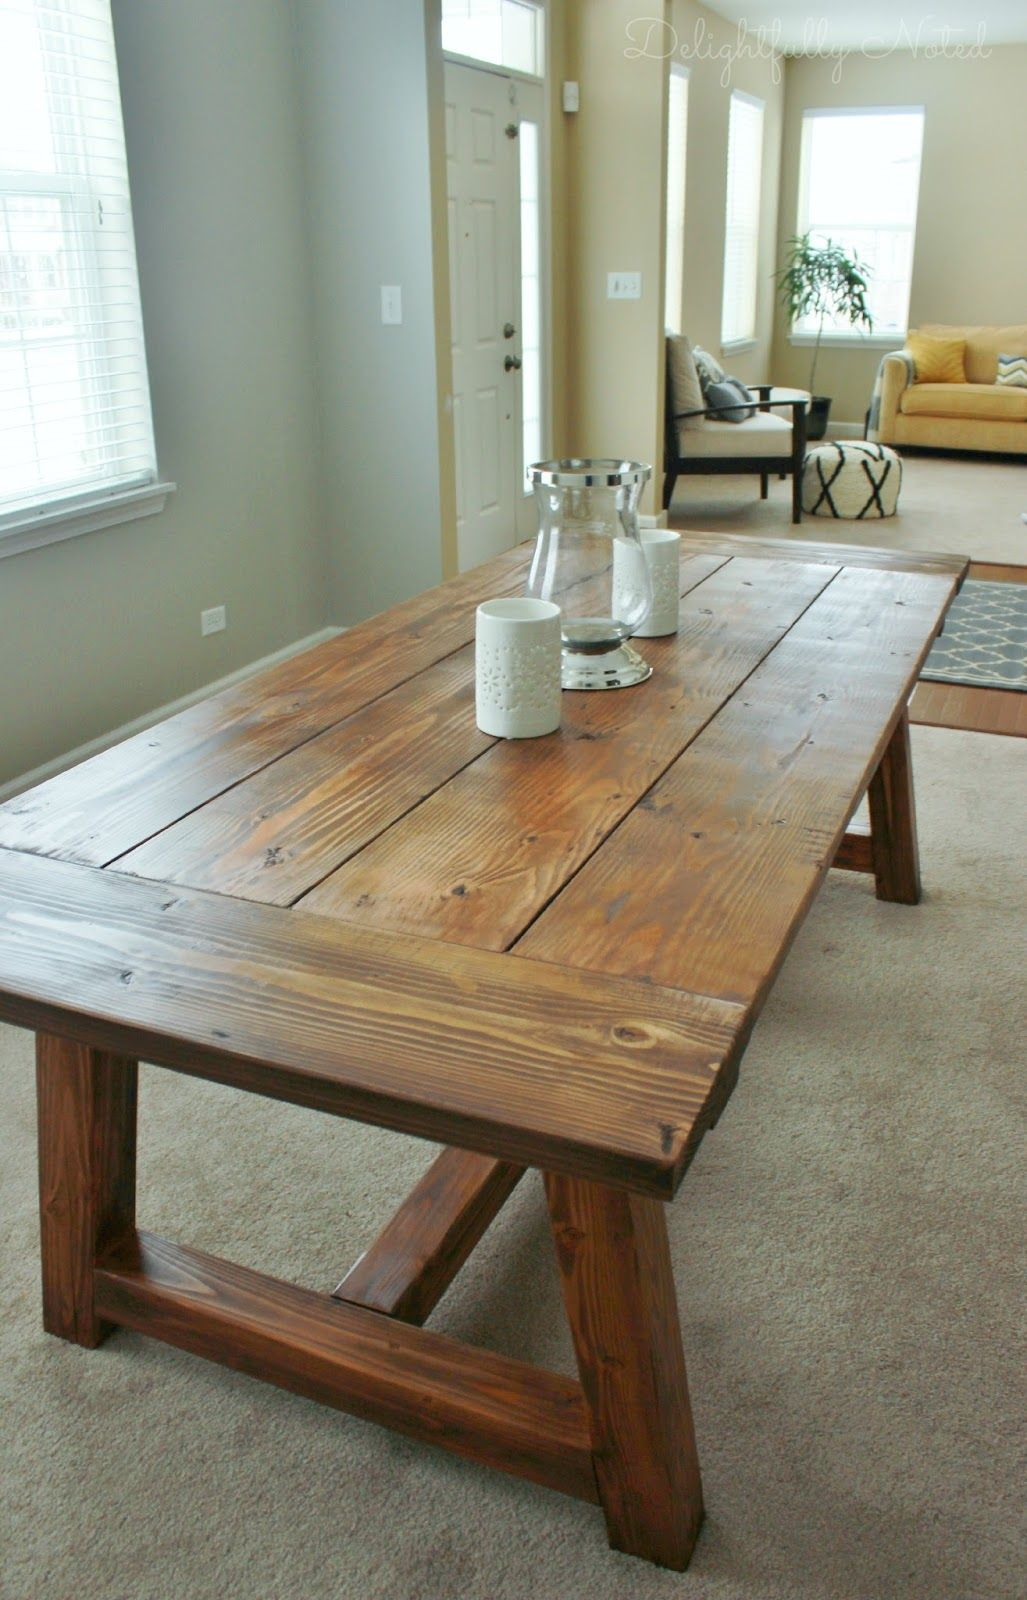 DIY Farmhouse Table Restoration Hardware Knockoff Holy